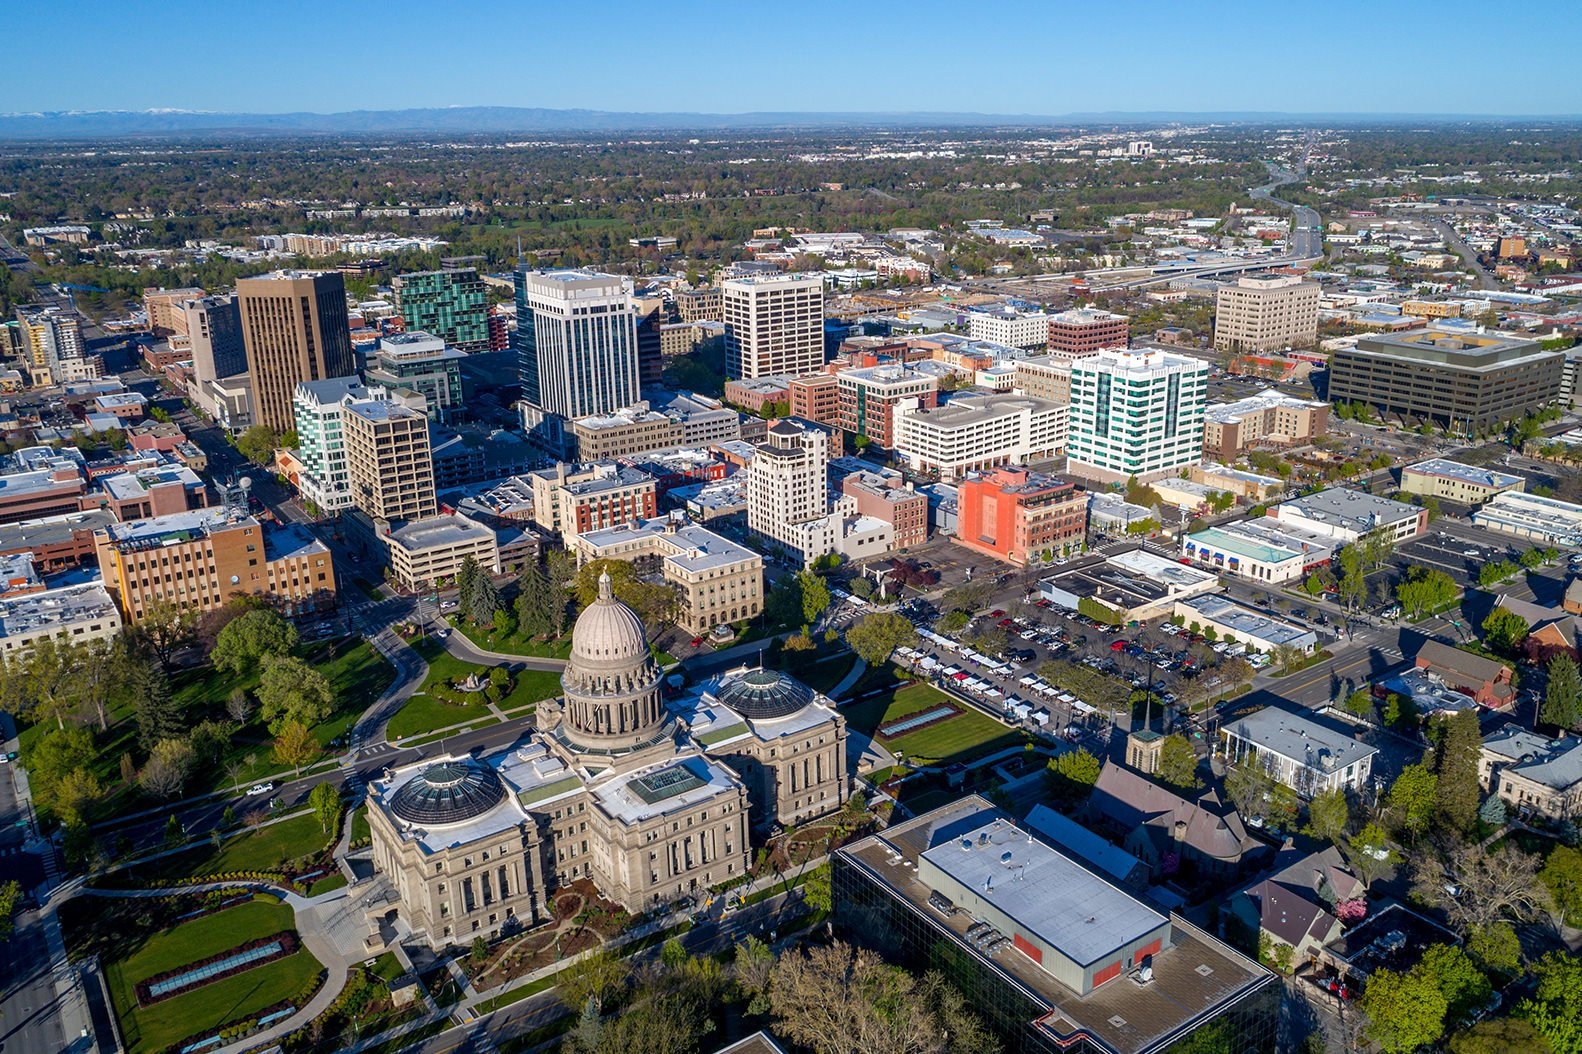 Birds eye view of Boise and the capitol building